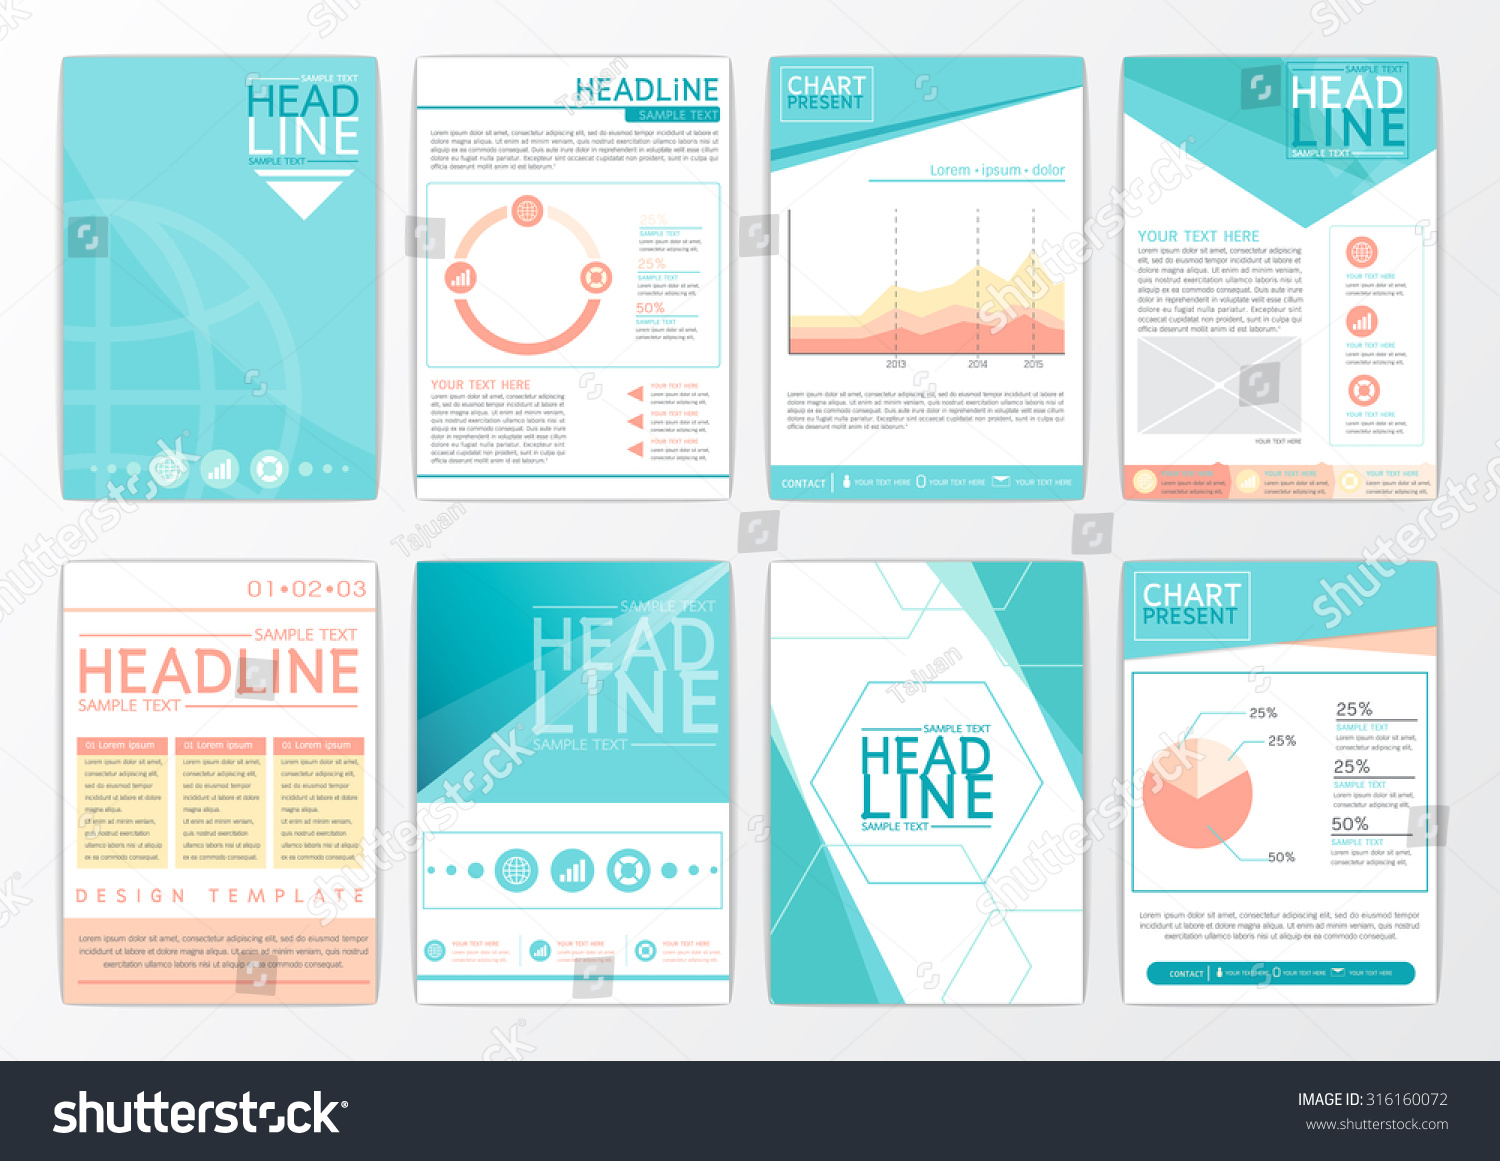 abstract background design business brochure big stock vector abstract background design business brochure big set flyer layout presentation advertising